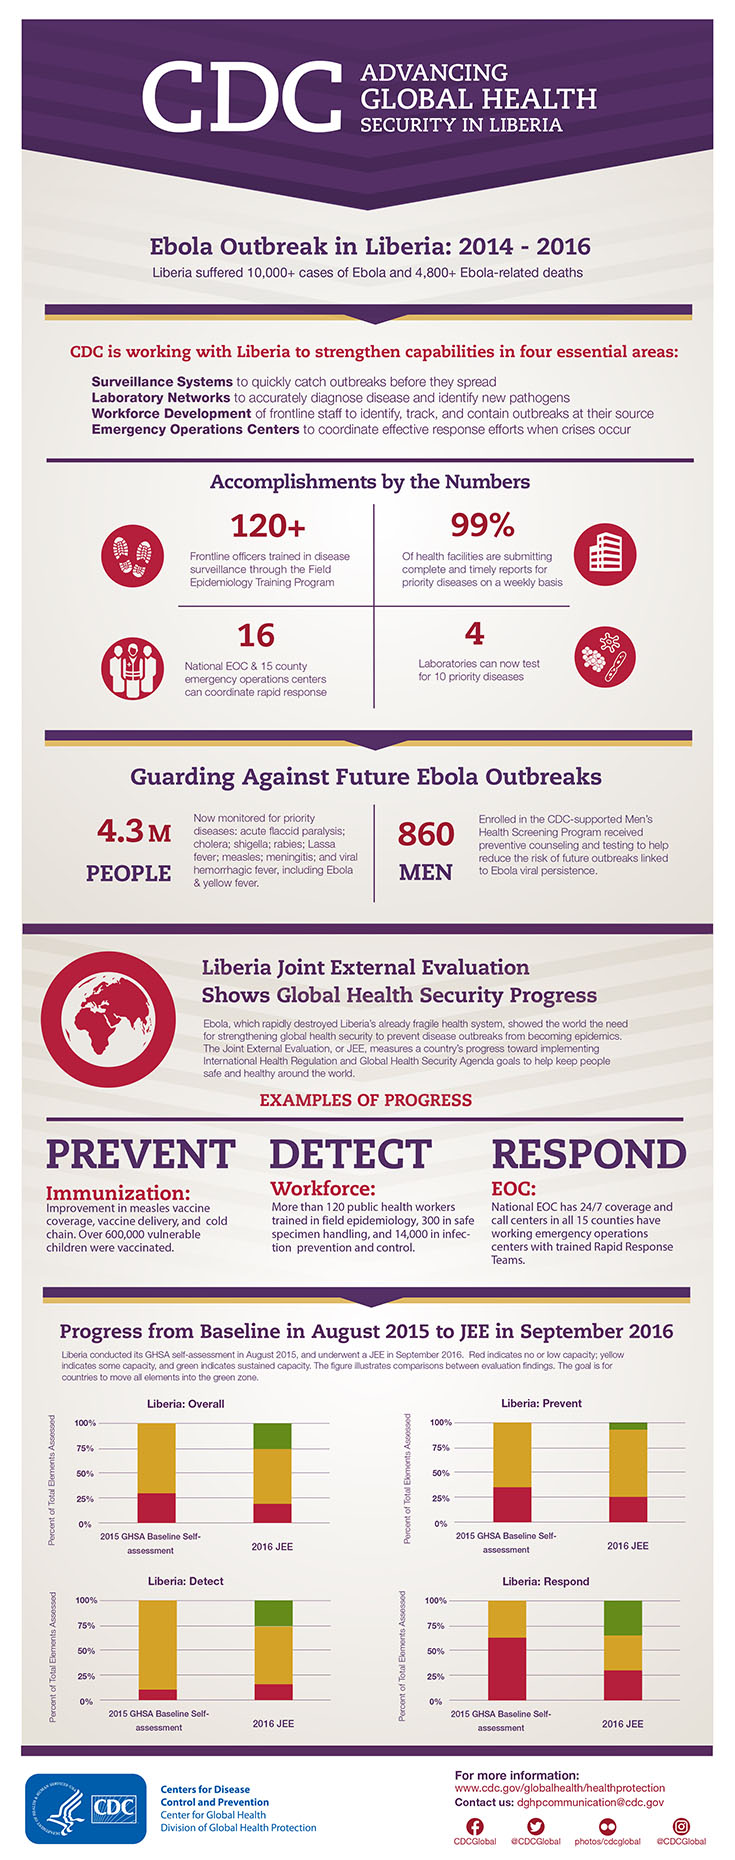 Advancing Global Health Security in Liberia infographic